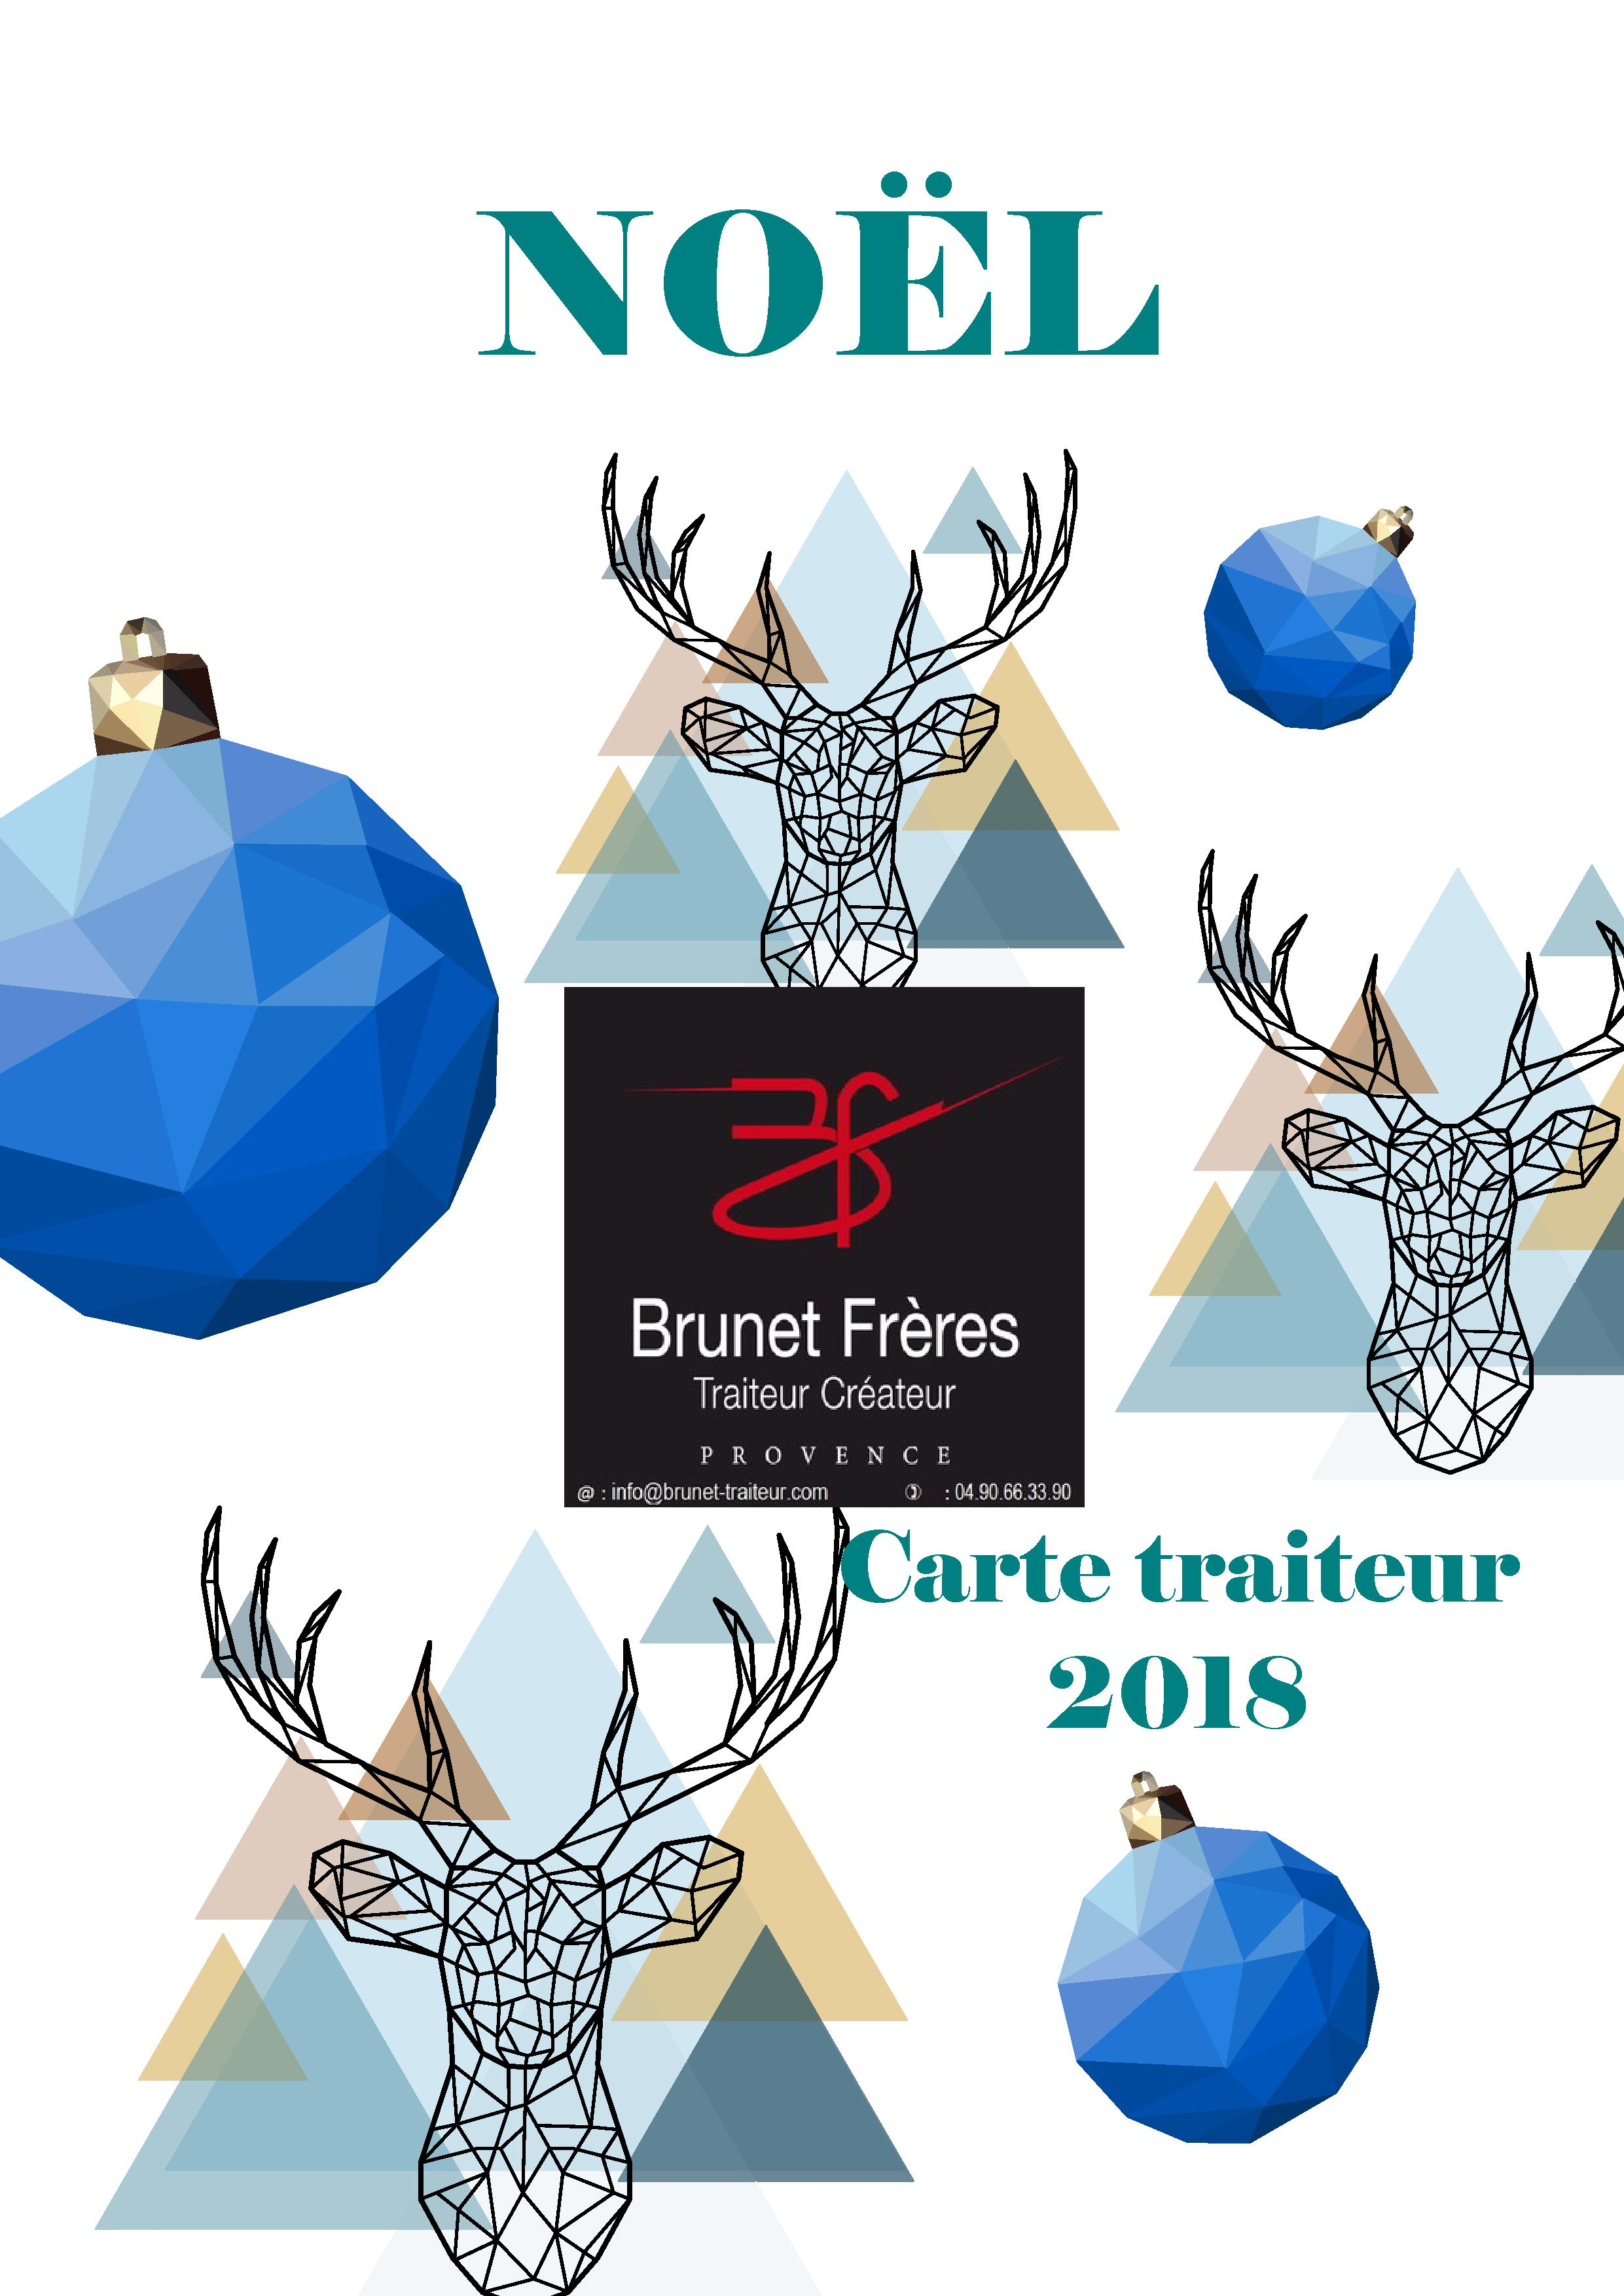 NOEL2018 CARTE TRAITEUR